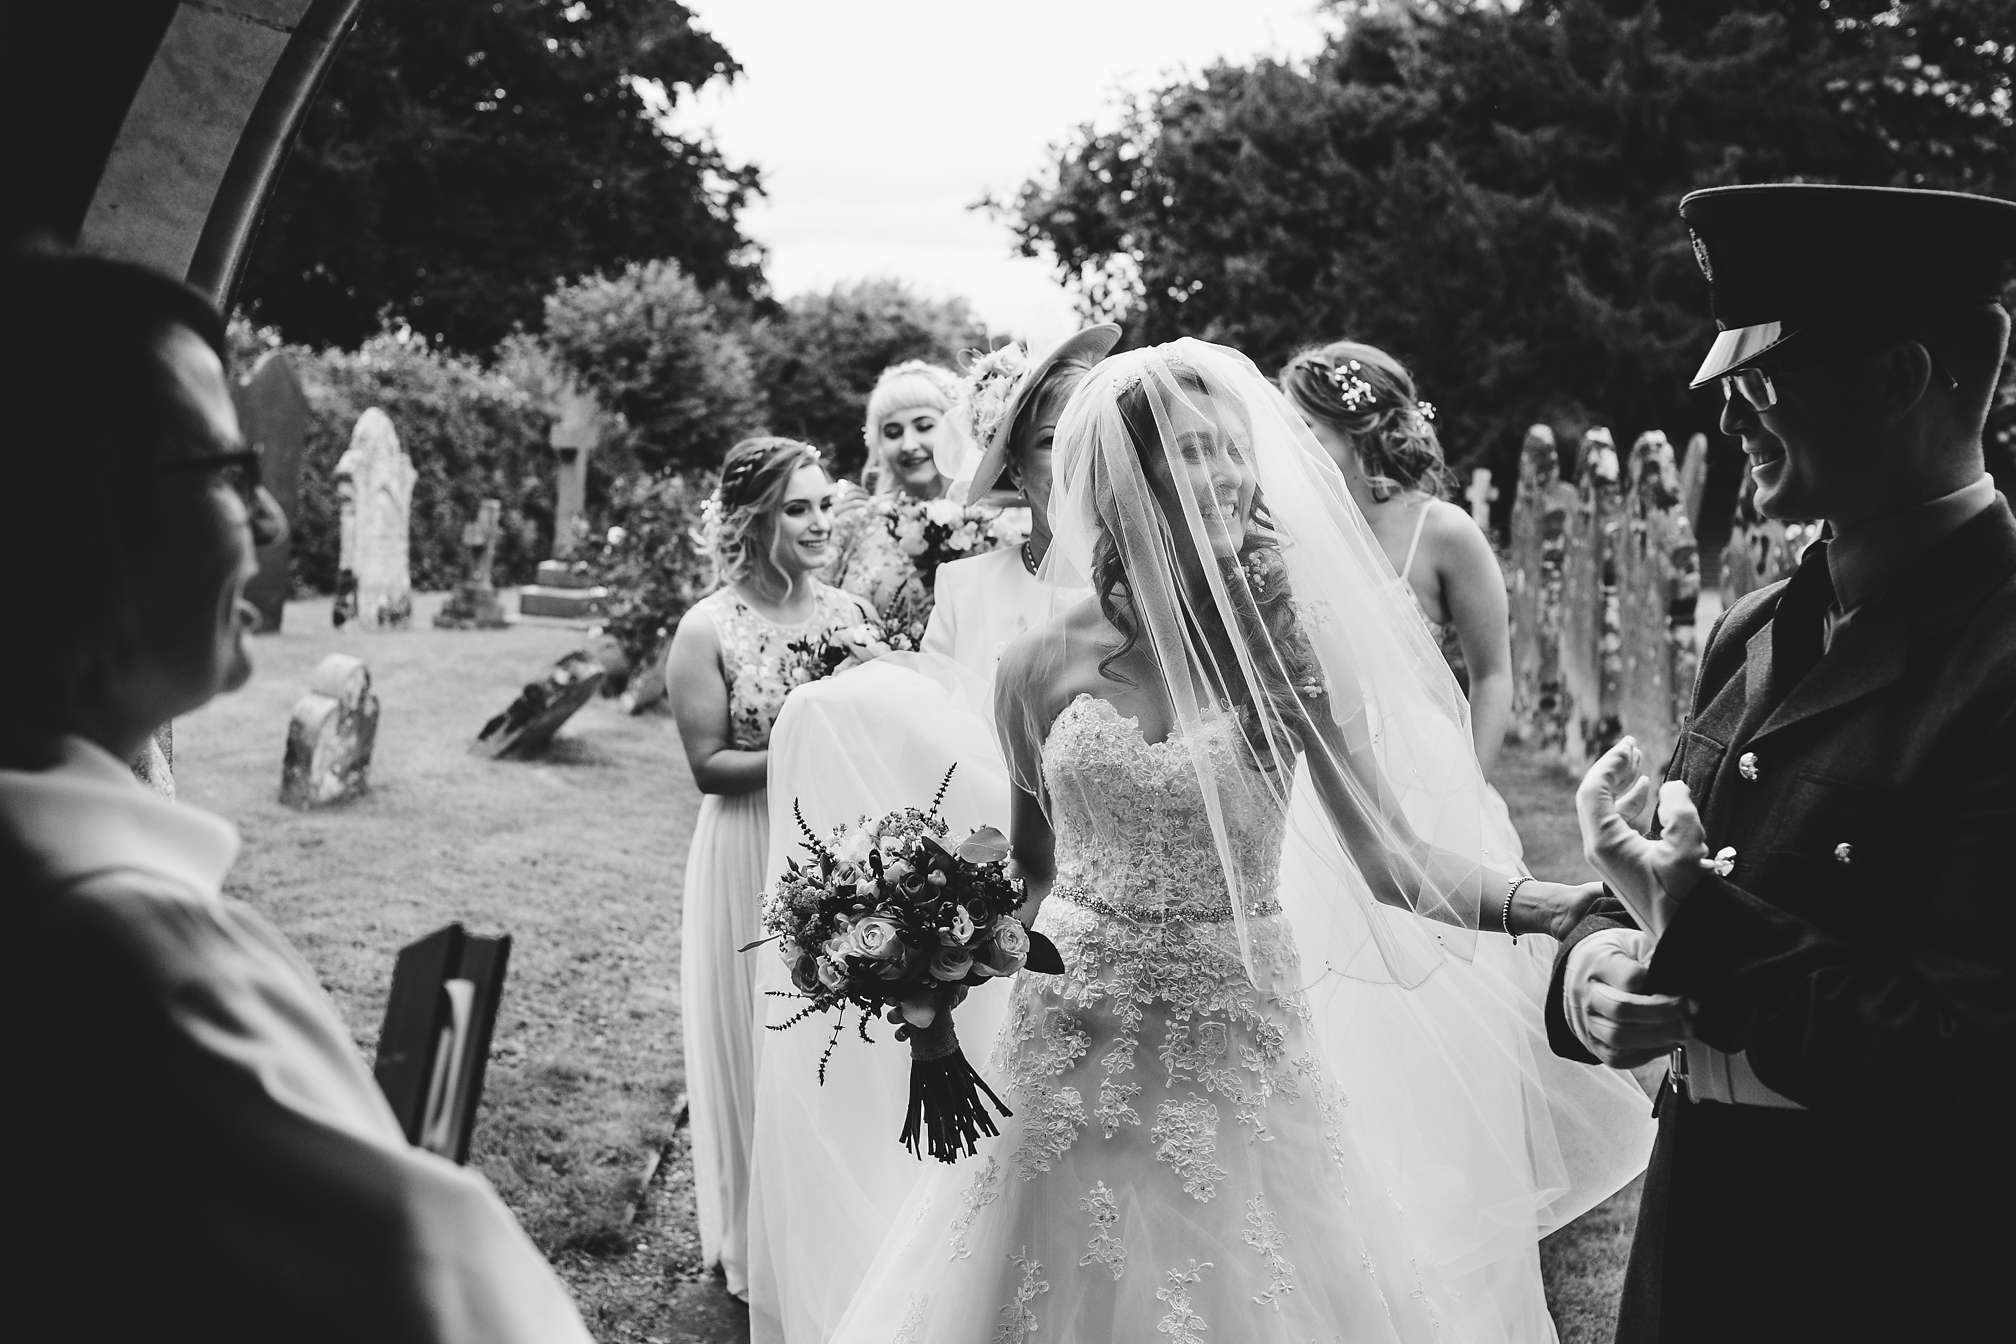 Emily & Mark's Wedding - Award Winning Church Moment